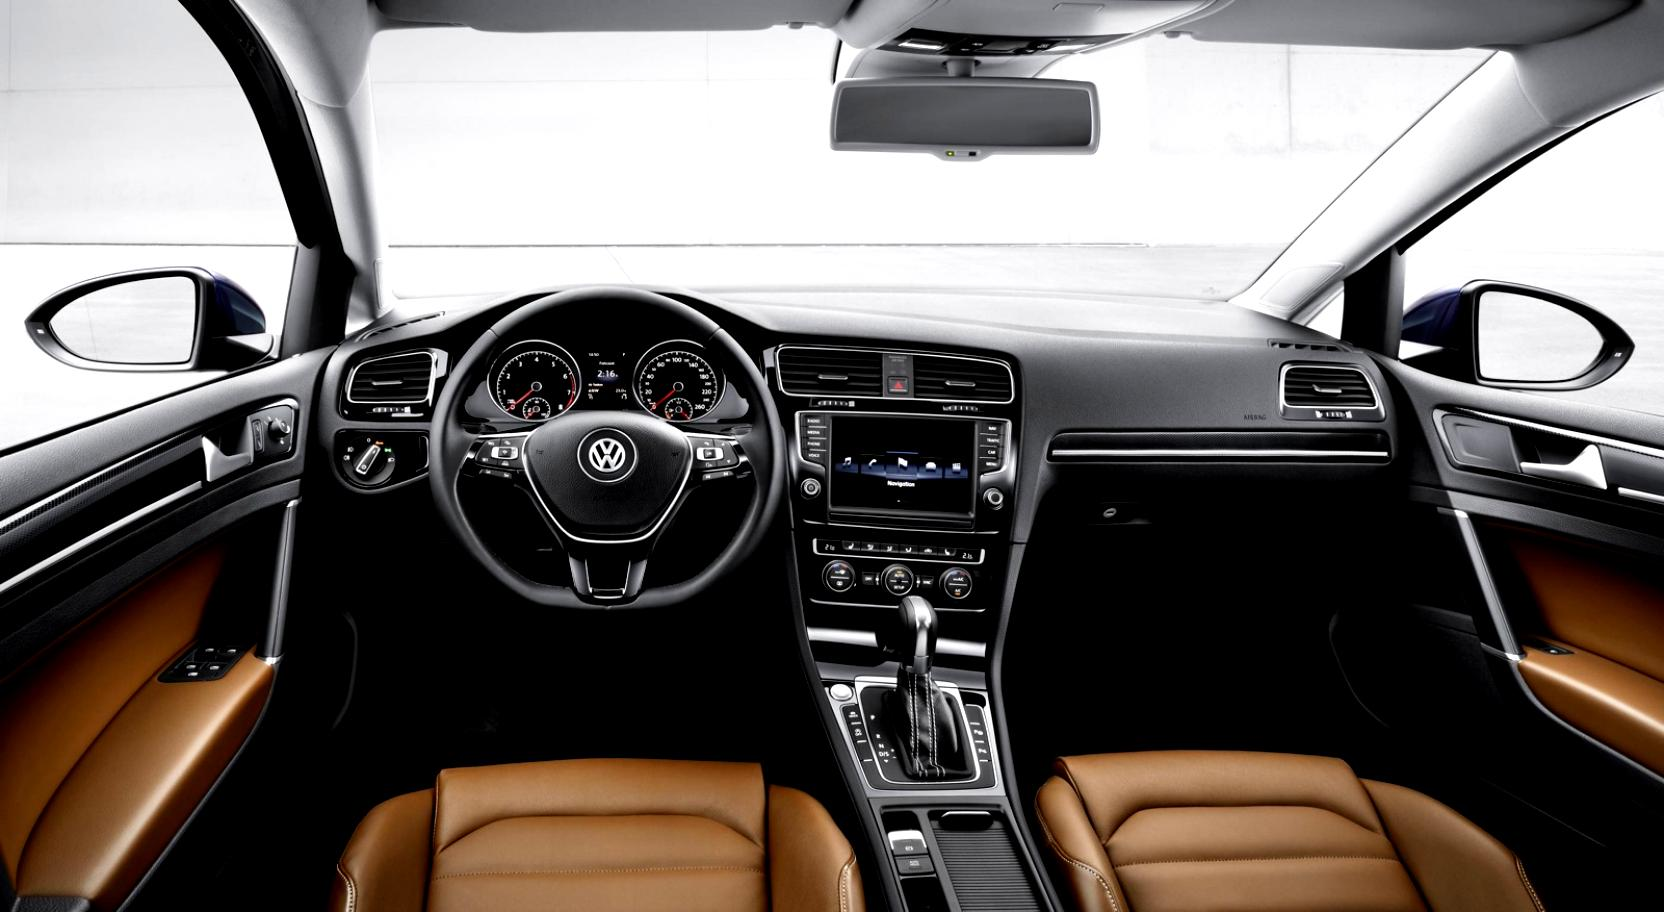 Volkswagen Golf VII 5 Doors 2012 #86